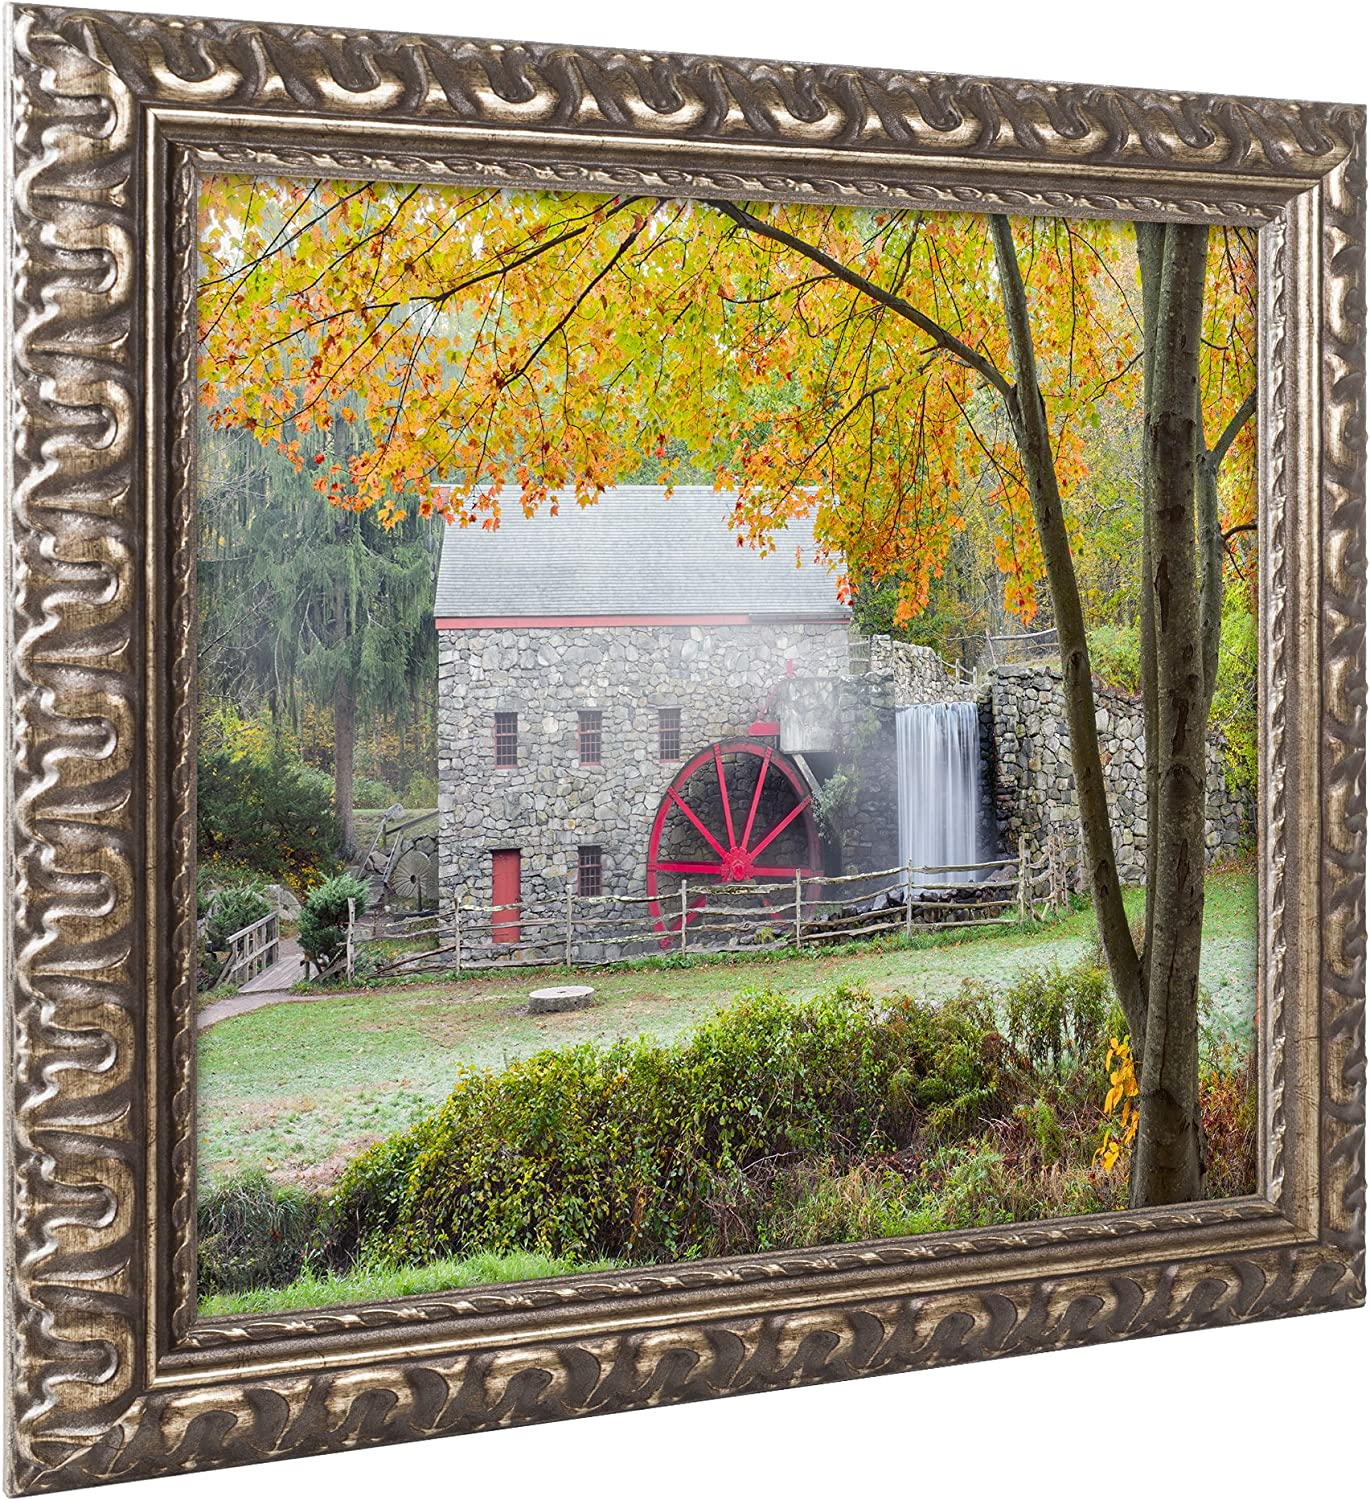 Amazon Com Grist Mill Autumn By Michael Blanchette Photography Gold Ornate Frame 11x14 Inch Home Kitchen